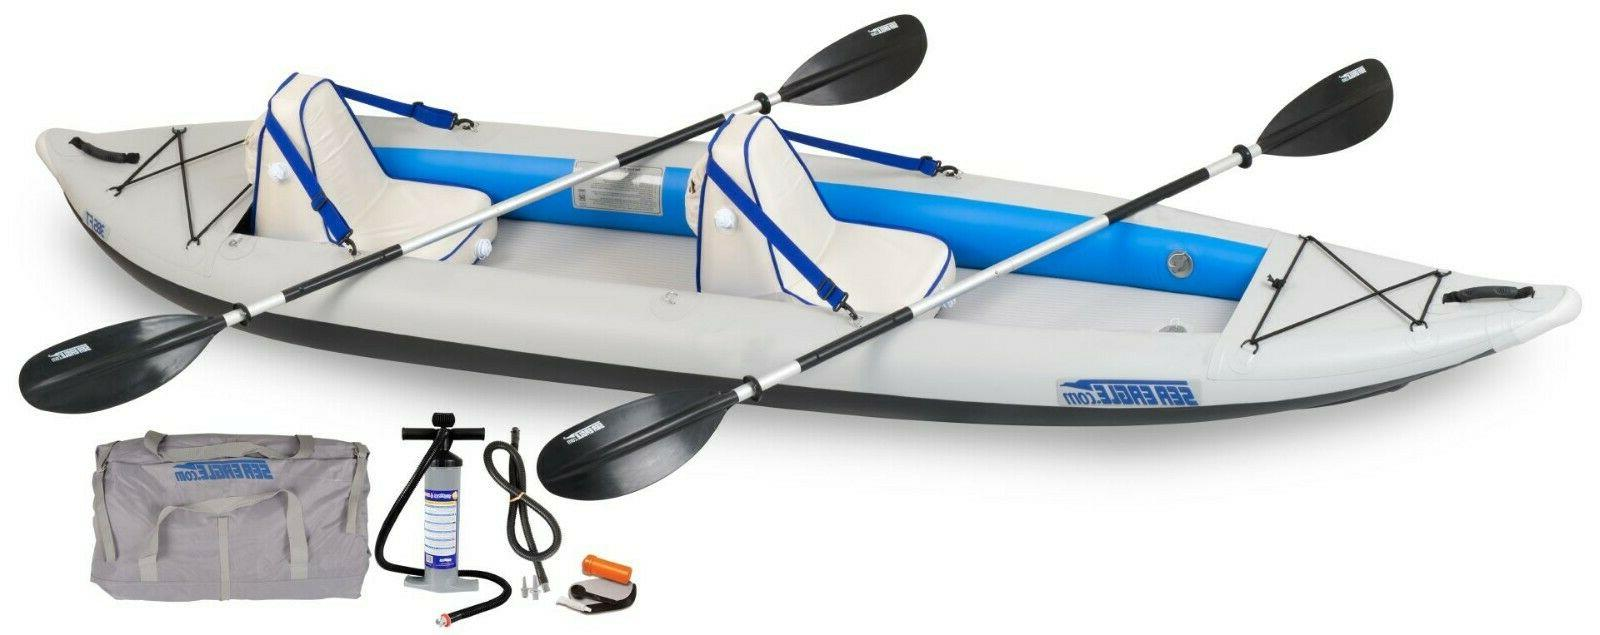 385ft inflatable fast track kayak deluxe package